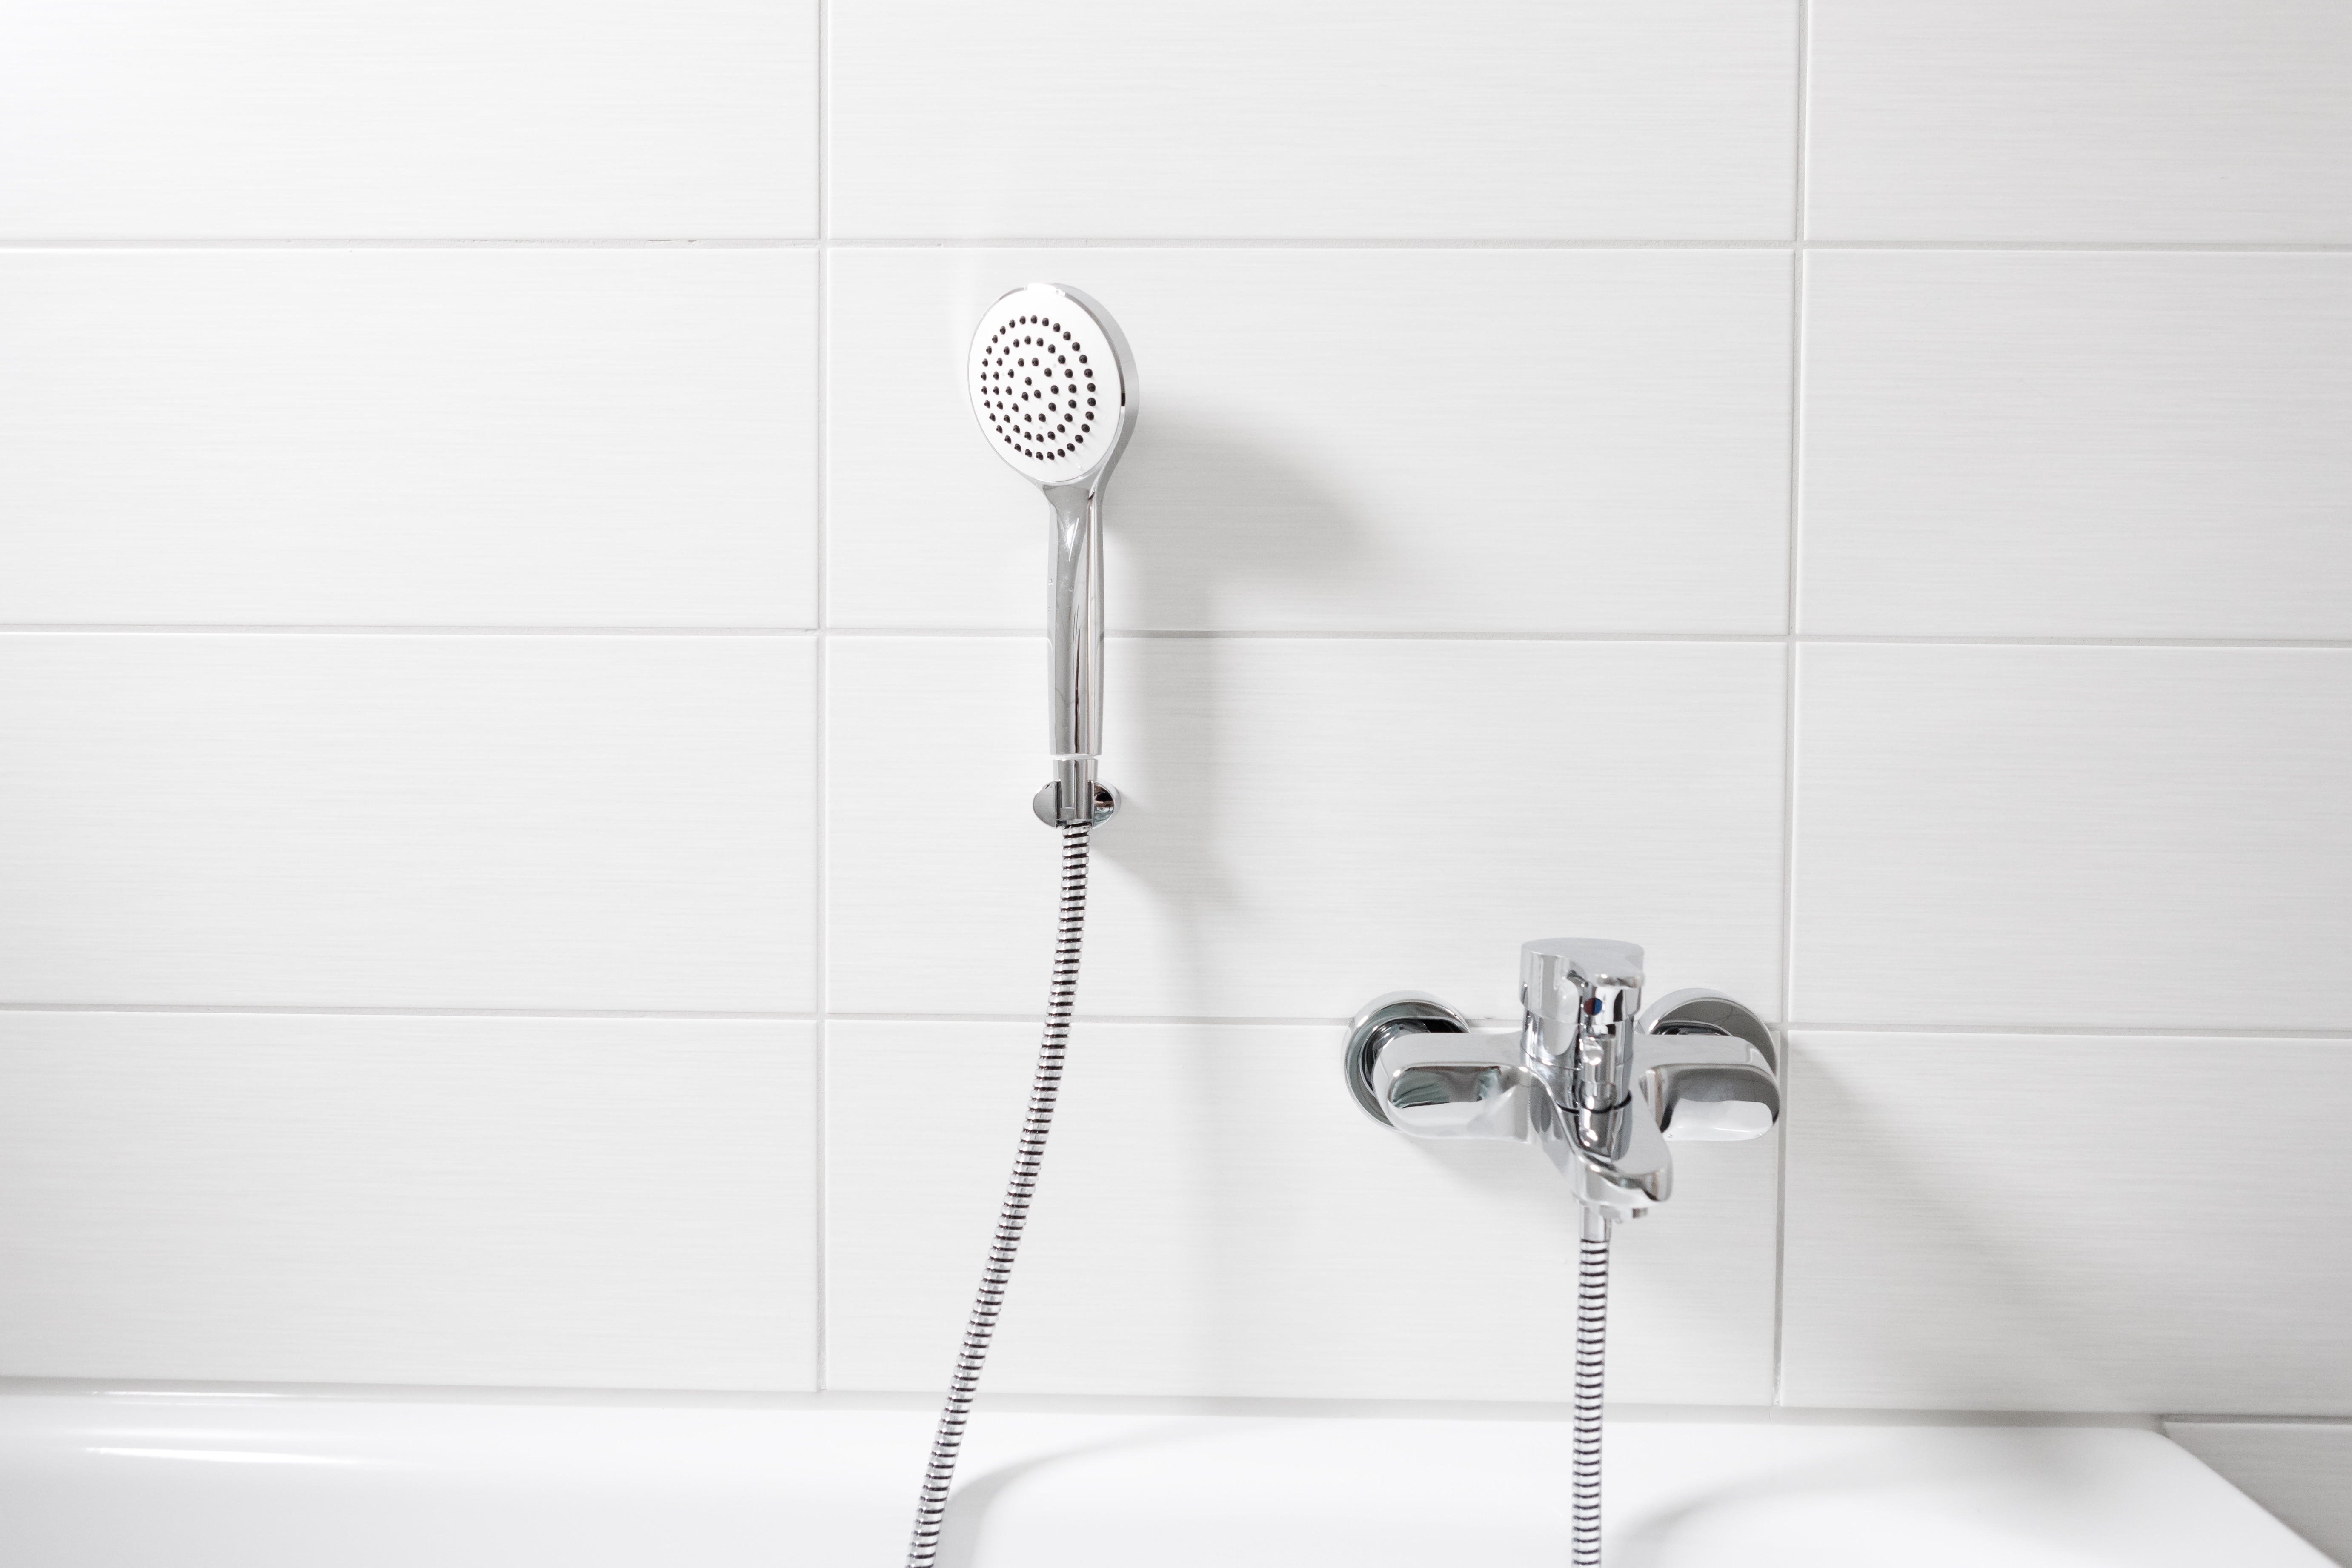 The Handle On The Shower Faucet Is Not Working Home Guides